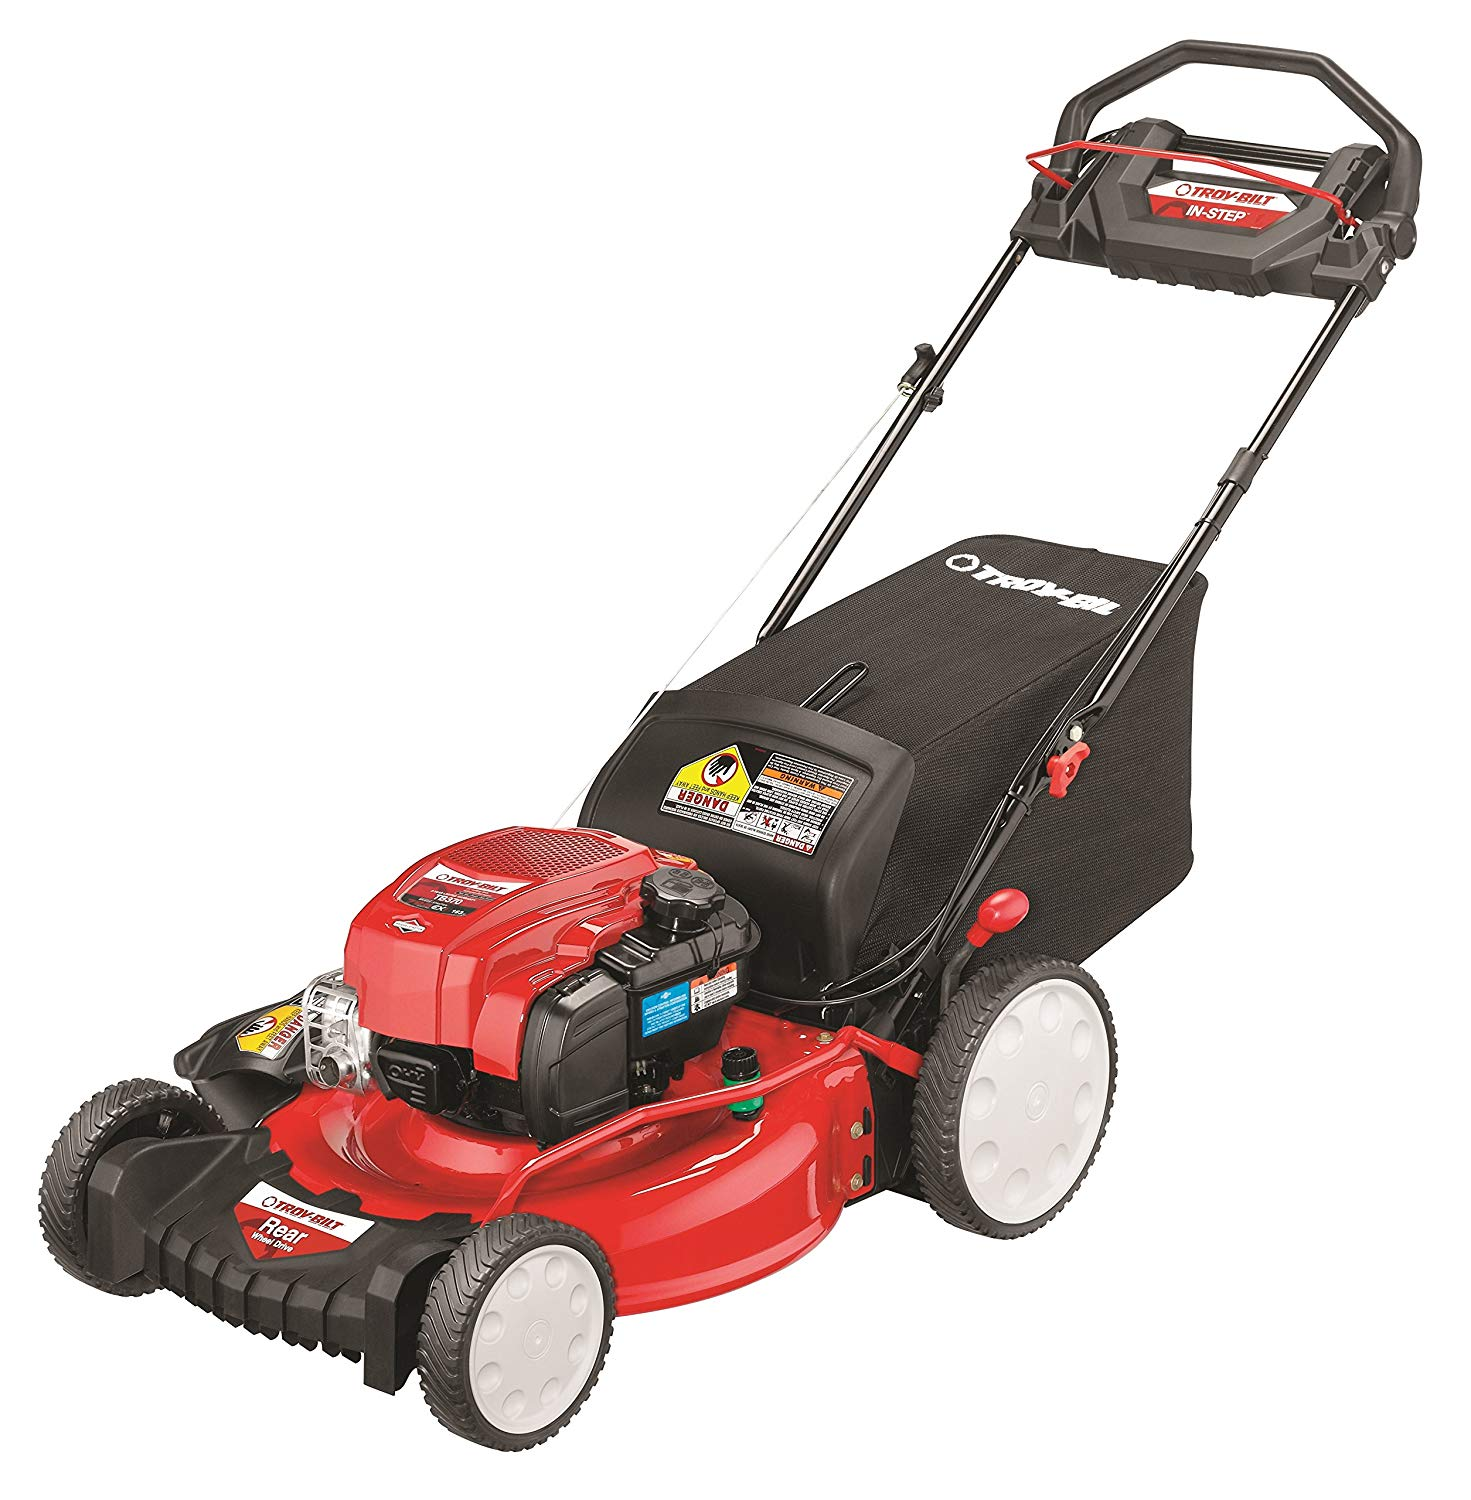 Troy-Bilt TB370 Step RWD Self-Propelled Lawn Mower review